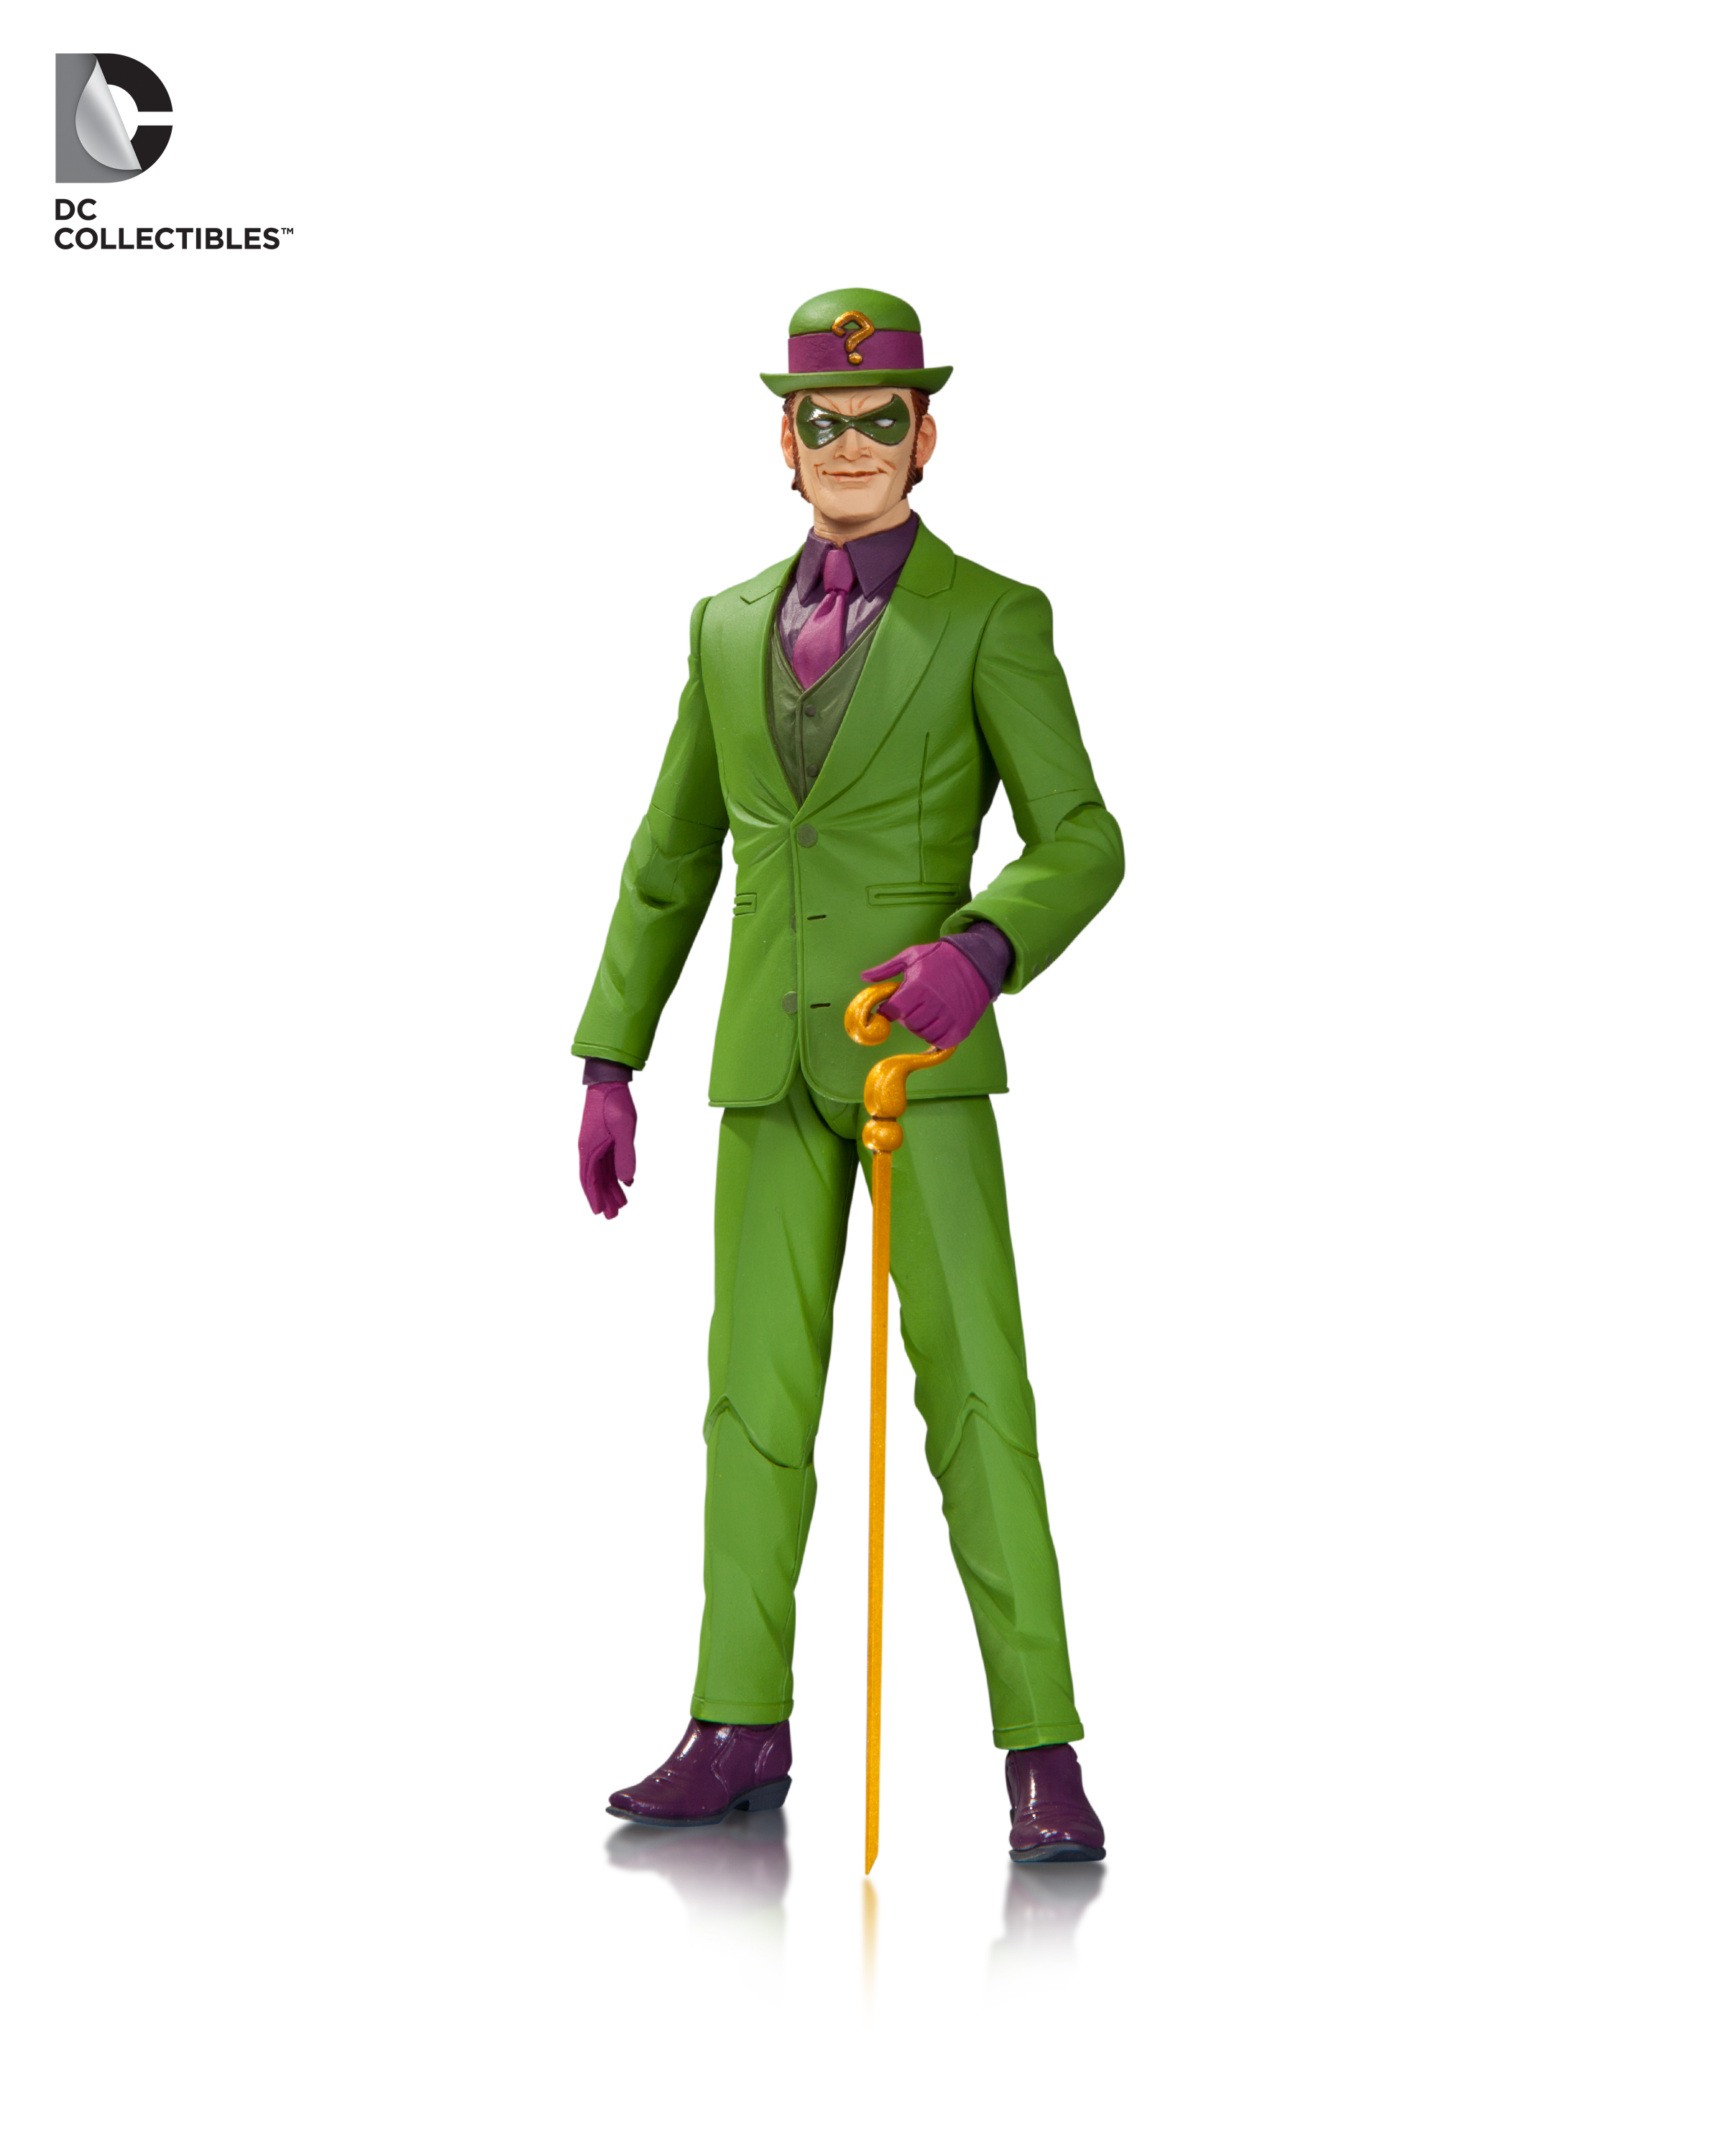 The Riddler has taken the spotlight as of late in Batman, and he's dressed for the part.